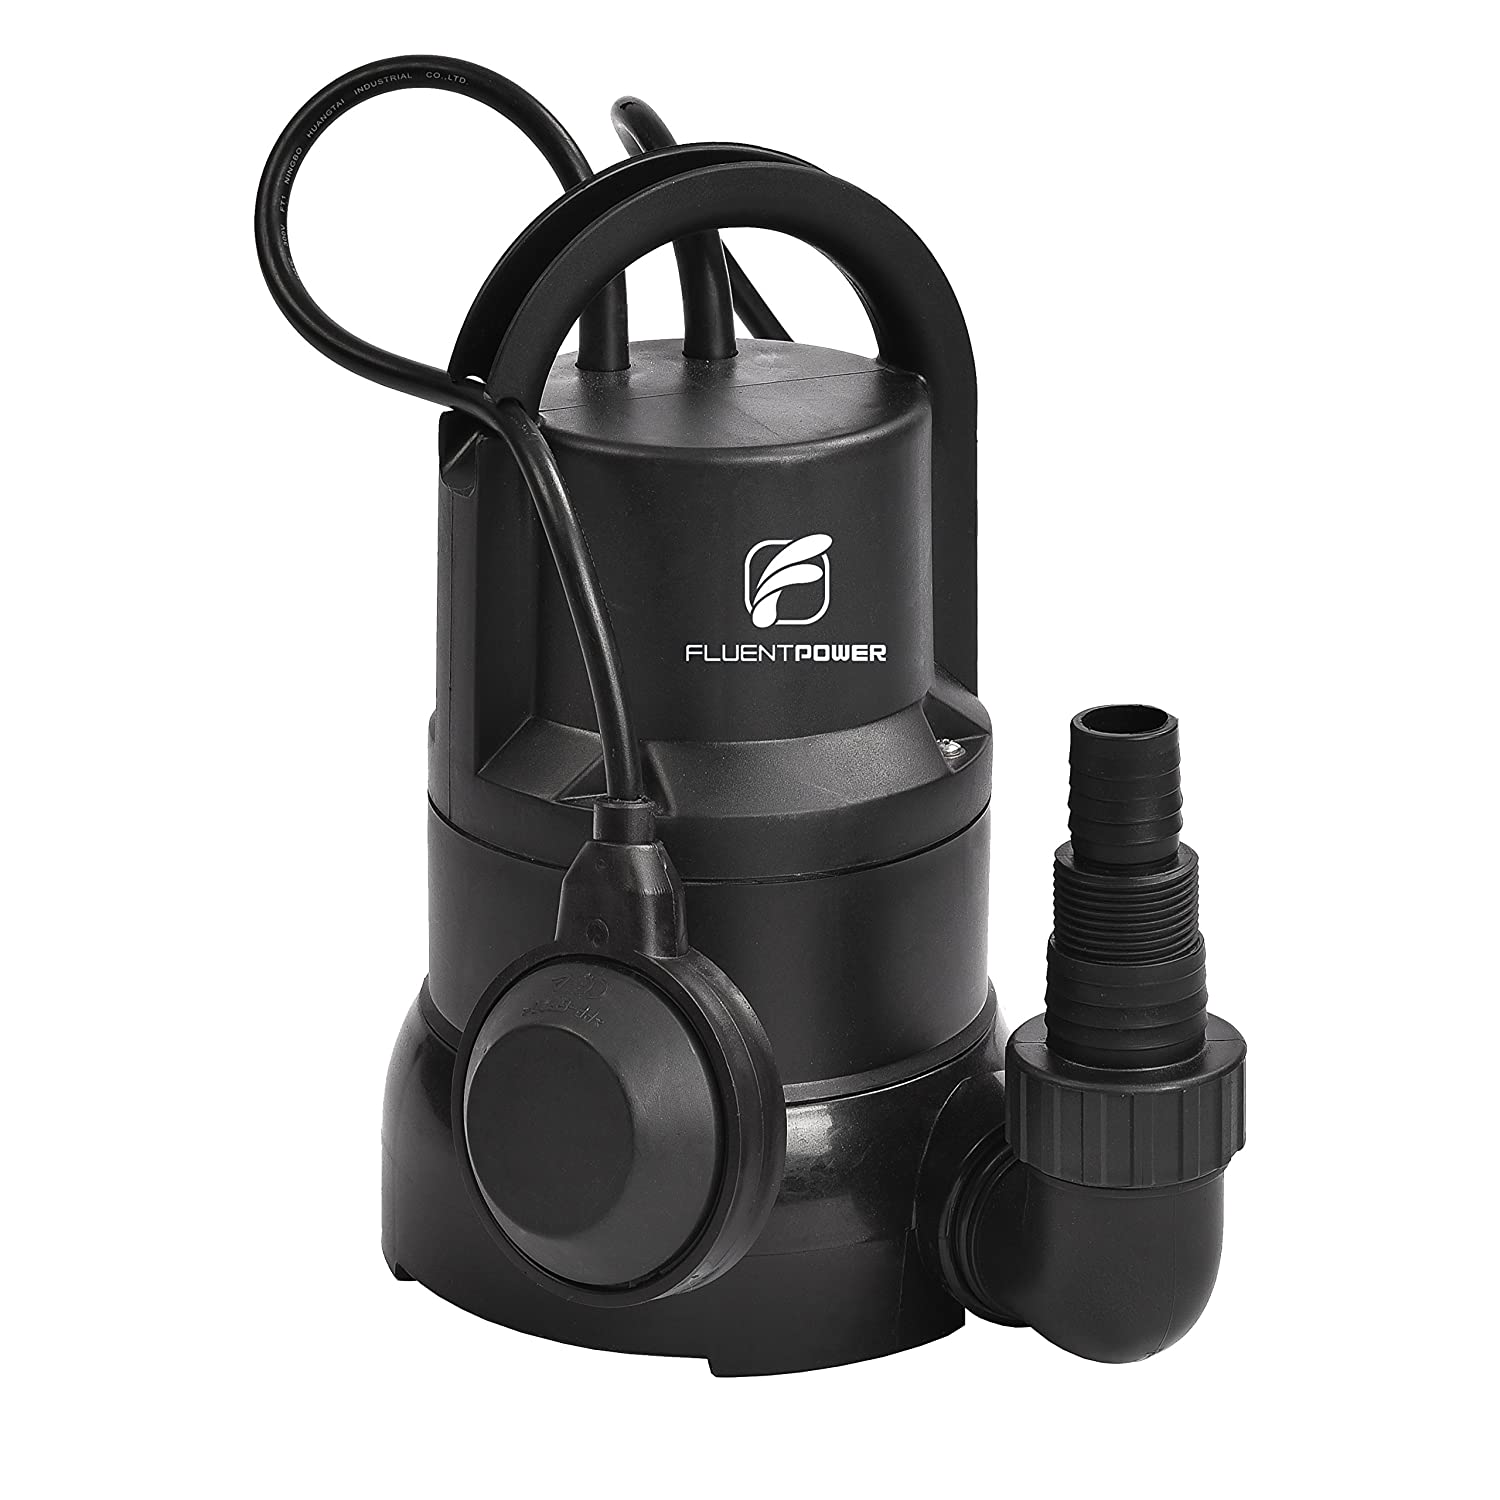 FLUENTEC Electric Submersible Pump with Float Switch and Max Flow7500L/H Dirty/Clean Submersible Water Pump for Water Transfer, Puddle, and Drainage Pool Ningbo Fluent Tools Co. LTD